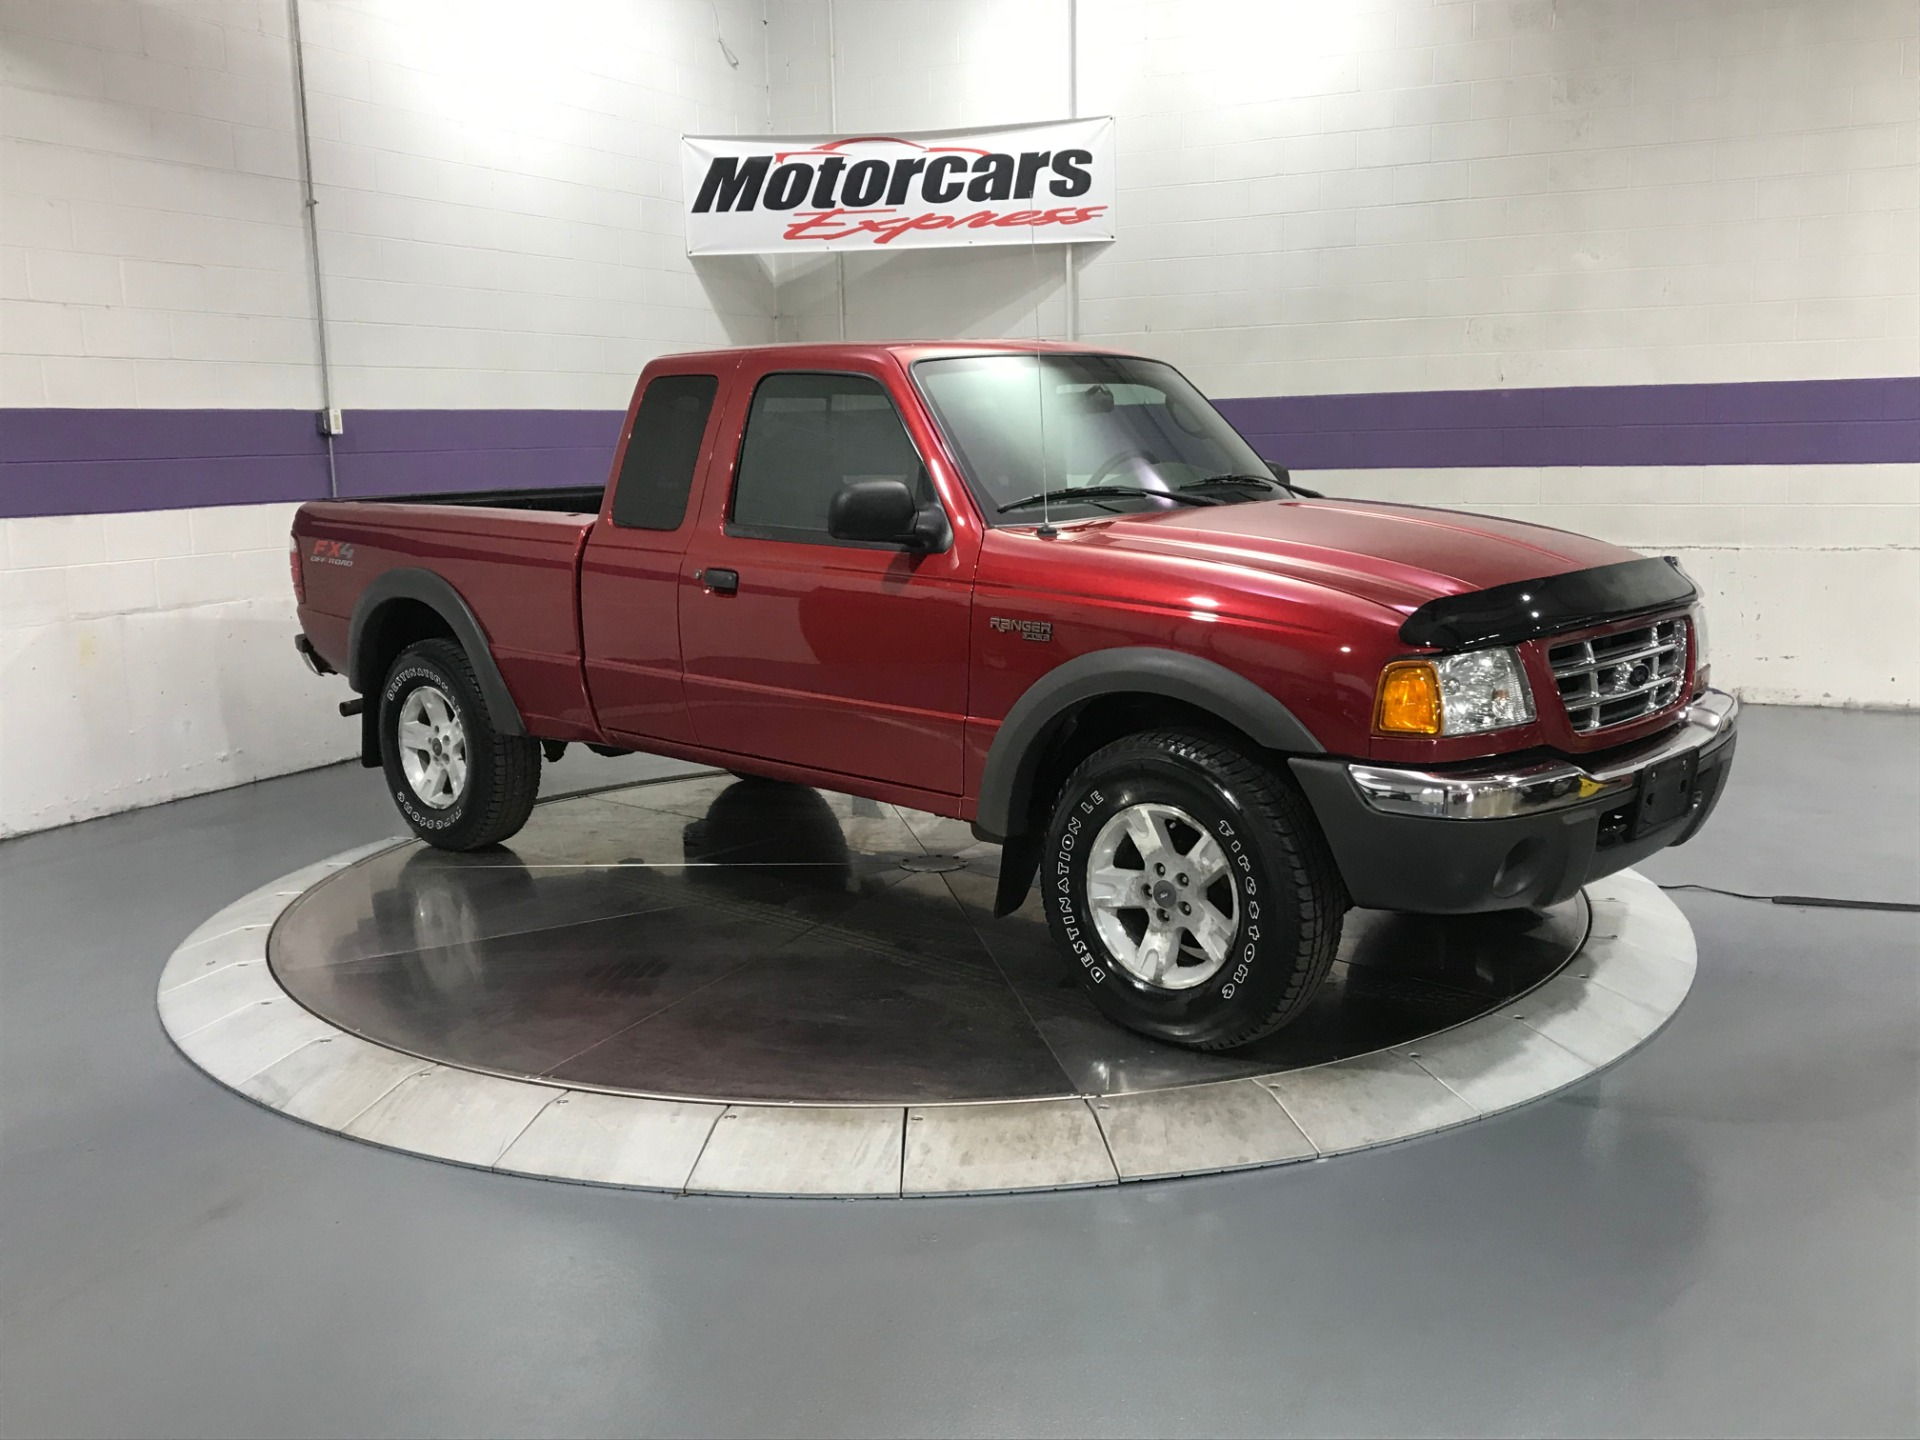 Used-2003-Ford-Ranger-XLT-FX4-Off-Road